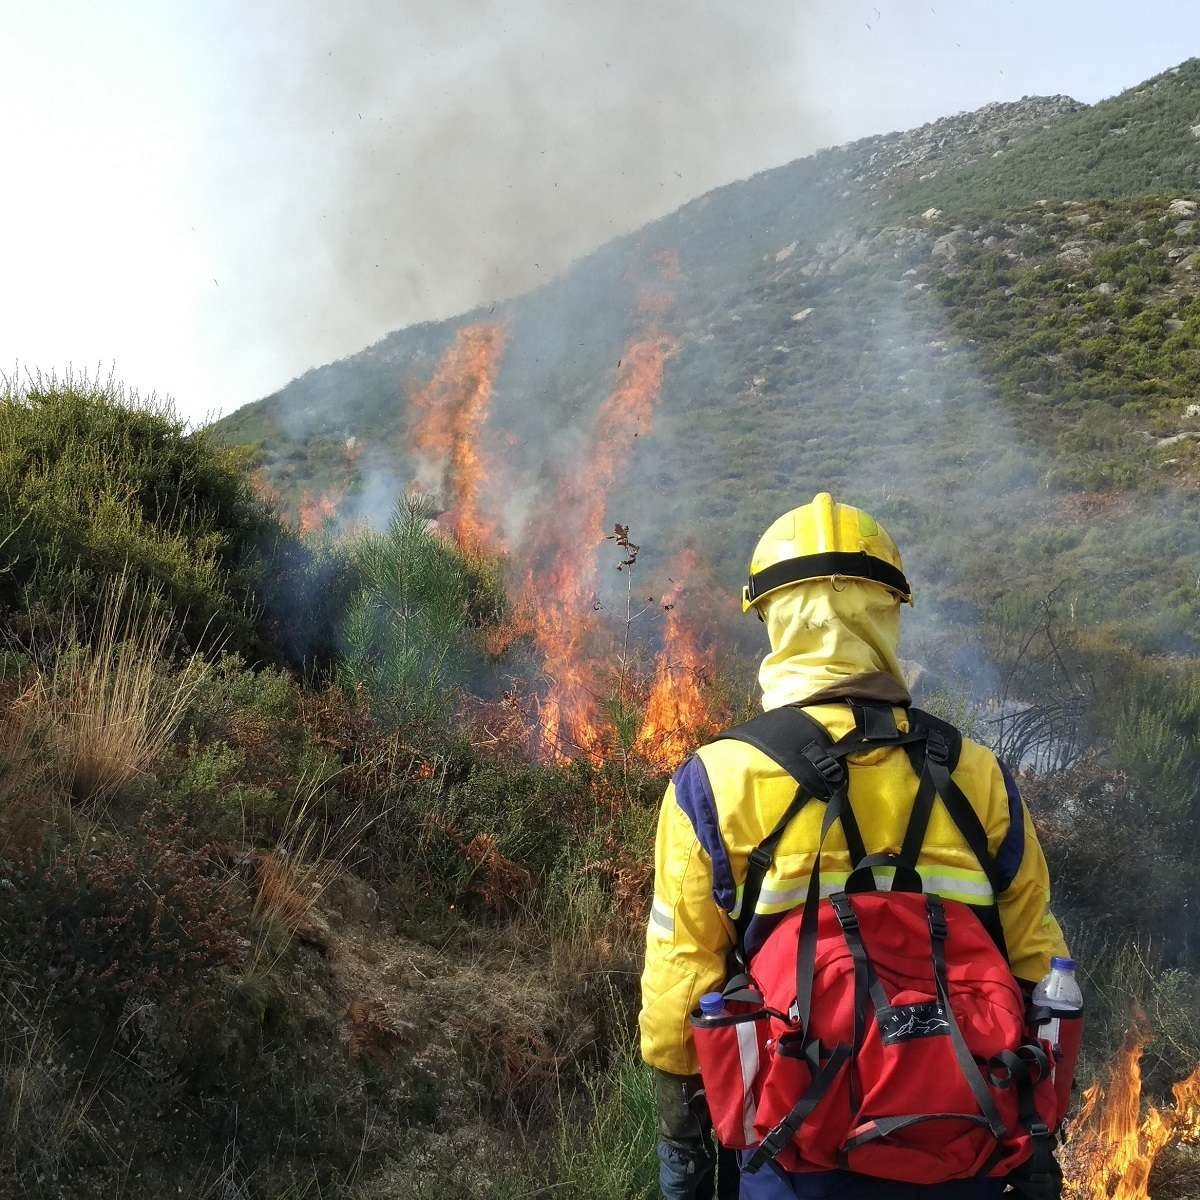 A fireman oversees a controlled fire